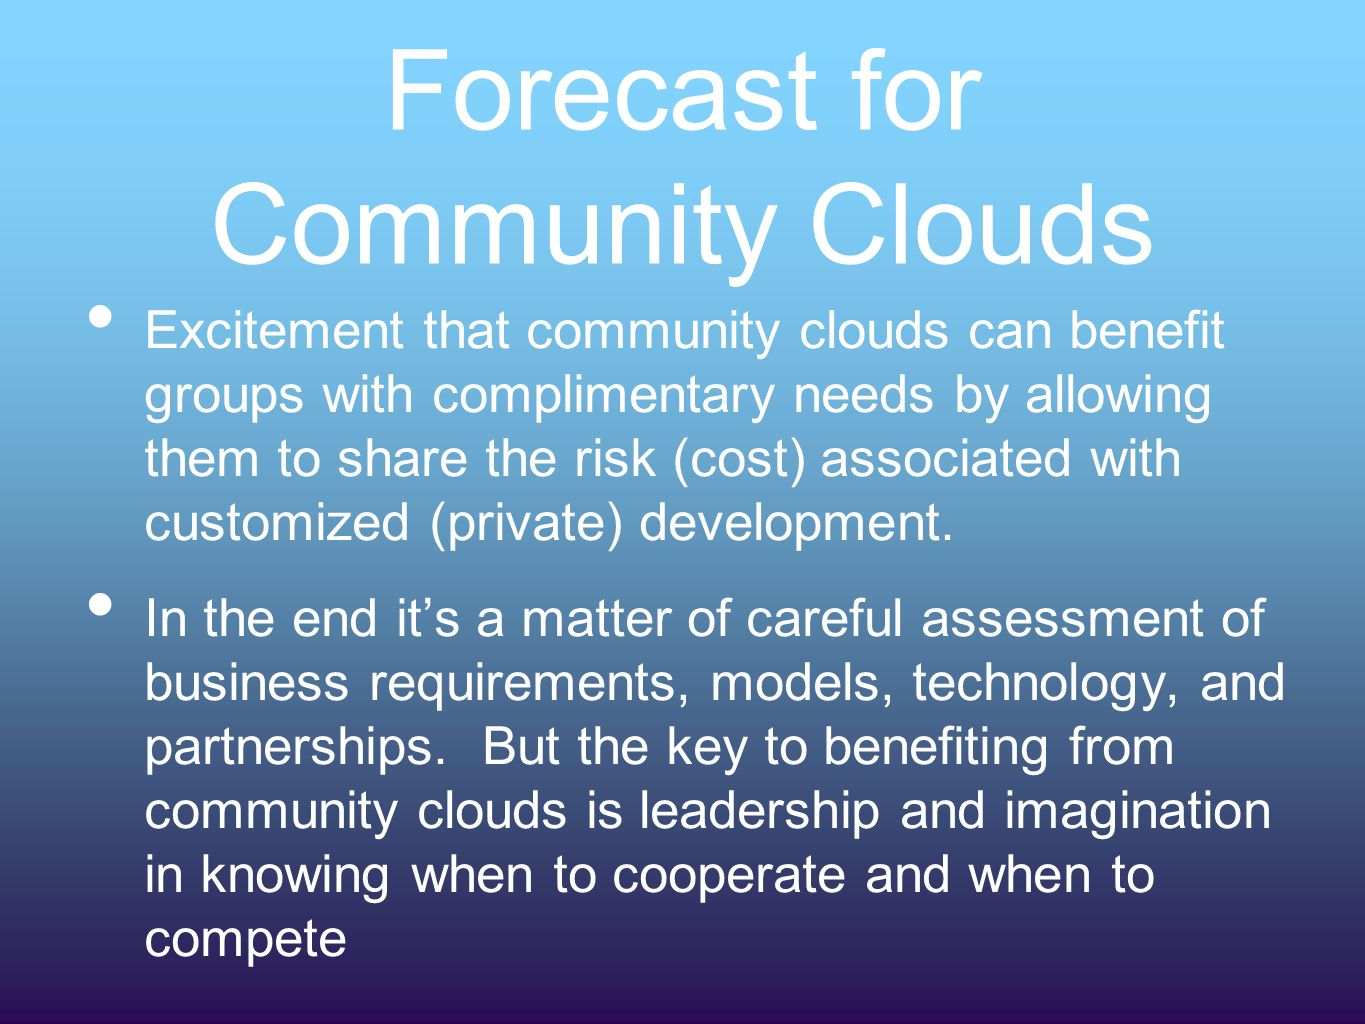 Forecast for Community Clouds Excitement that community clouds can benefit groups with complimentary needs by allowing them to share the risk (cost) associated with customized (private) development.